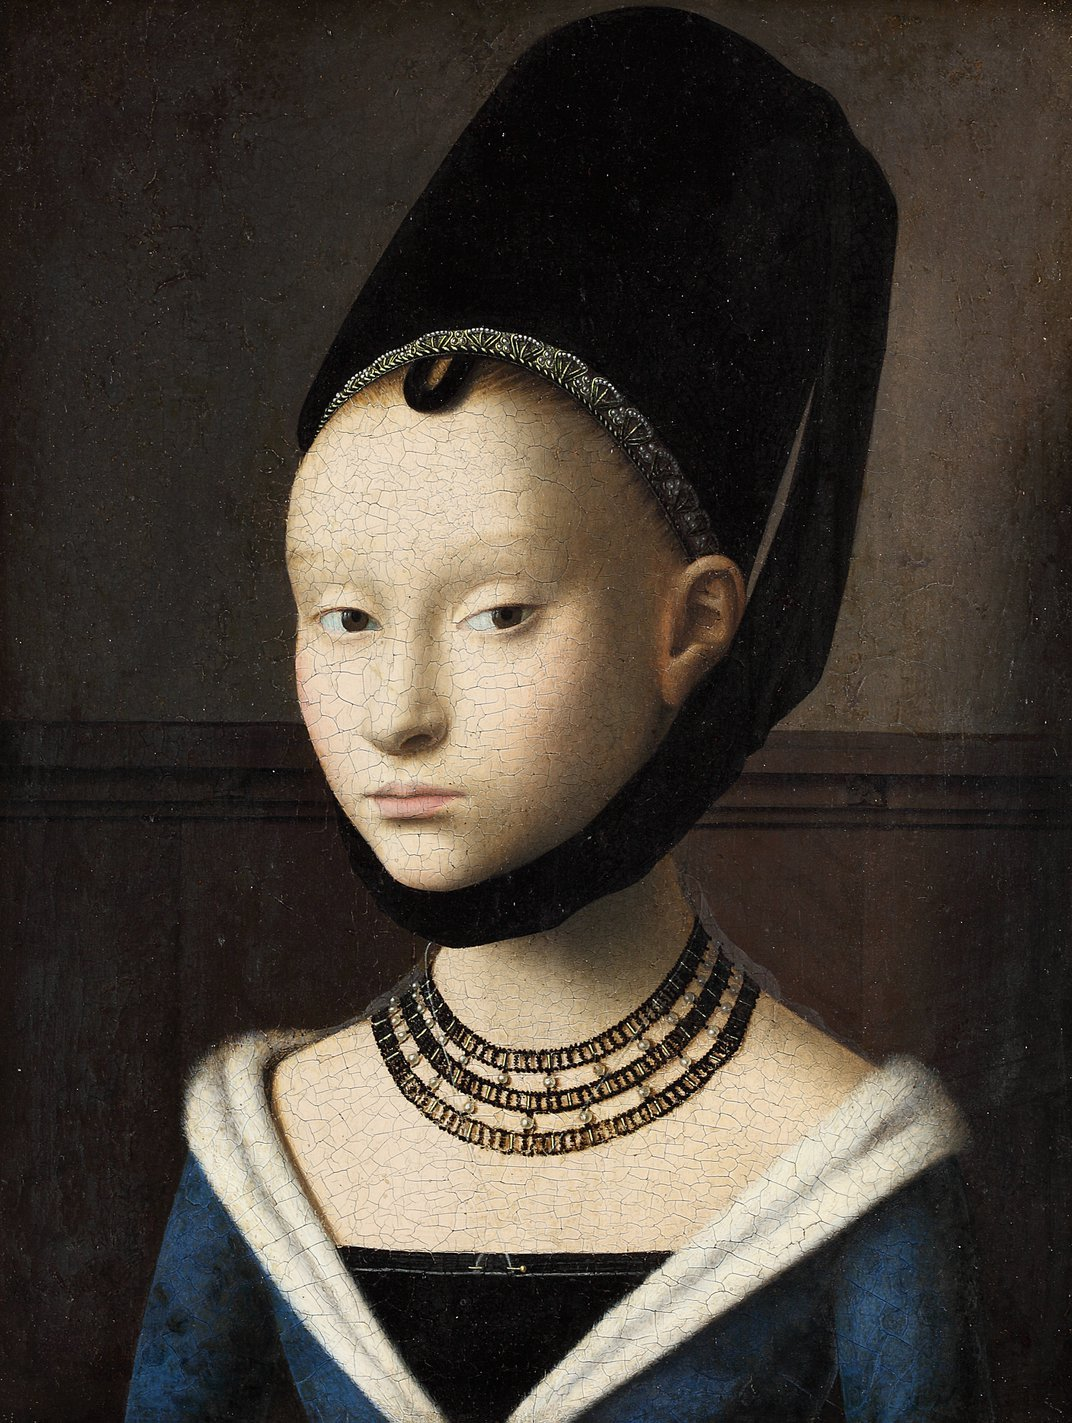 Exhibition of 100 Renaissance portraits highlights humans' lifelong desire to remember